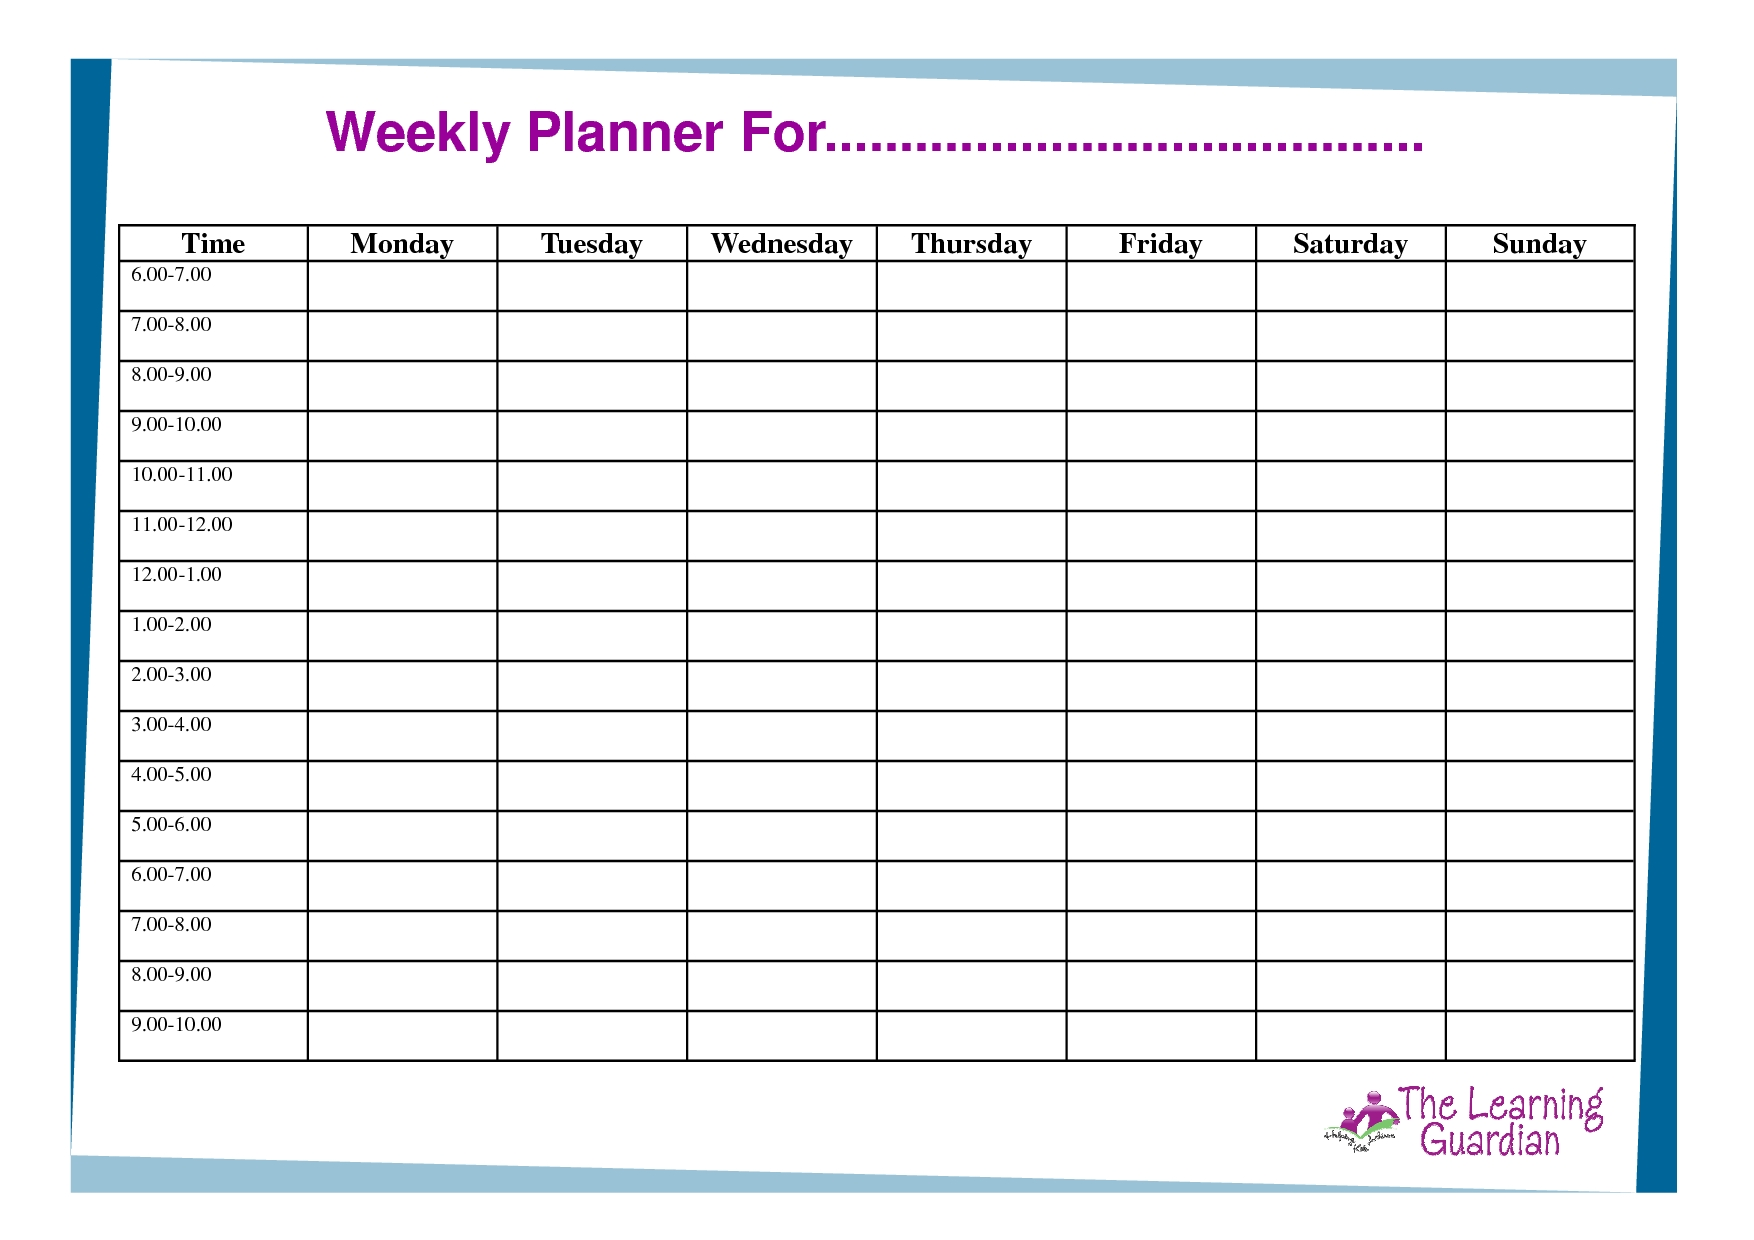 Free Printable Weekly Calendar Templates | Weekly Planner throughout Pdf Free Monday - Friday Weekly Planner